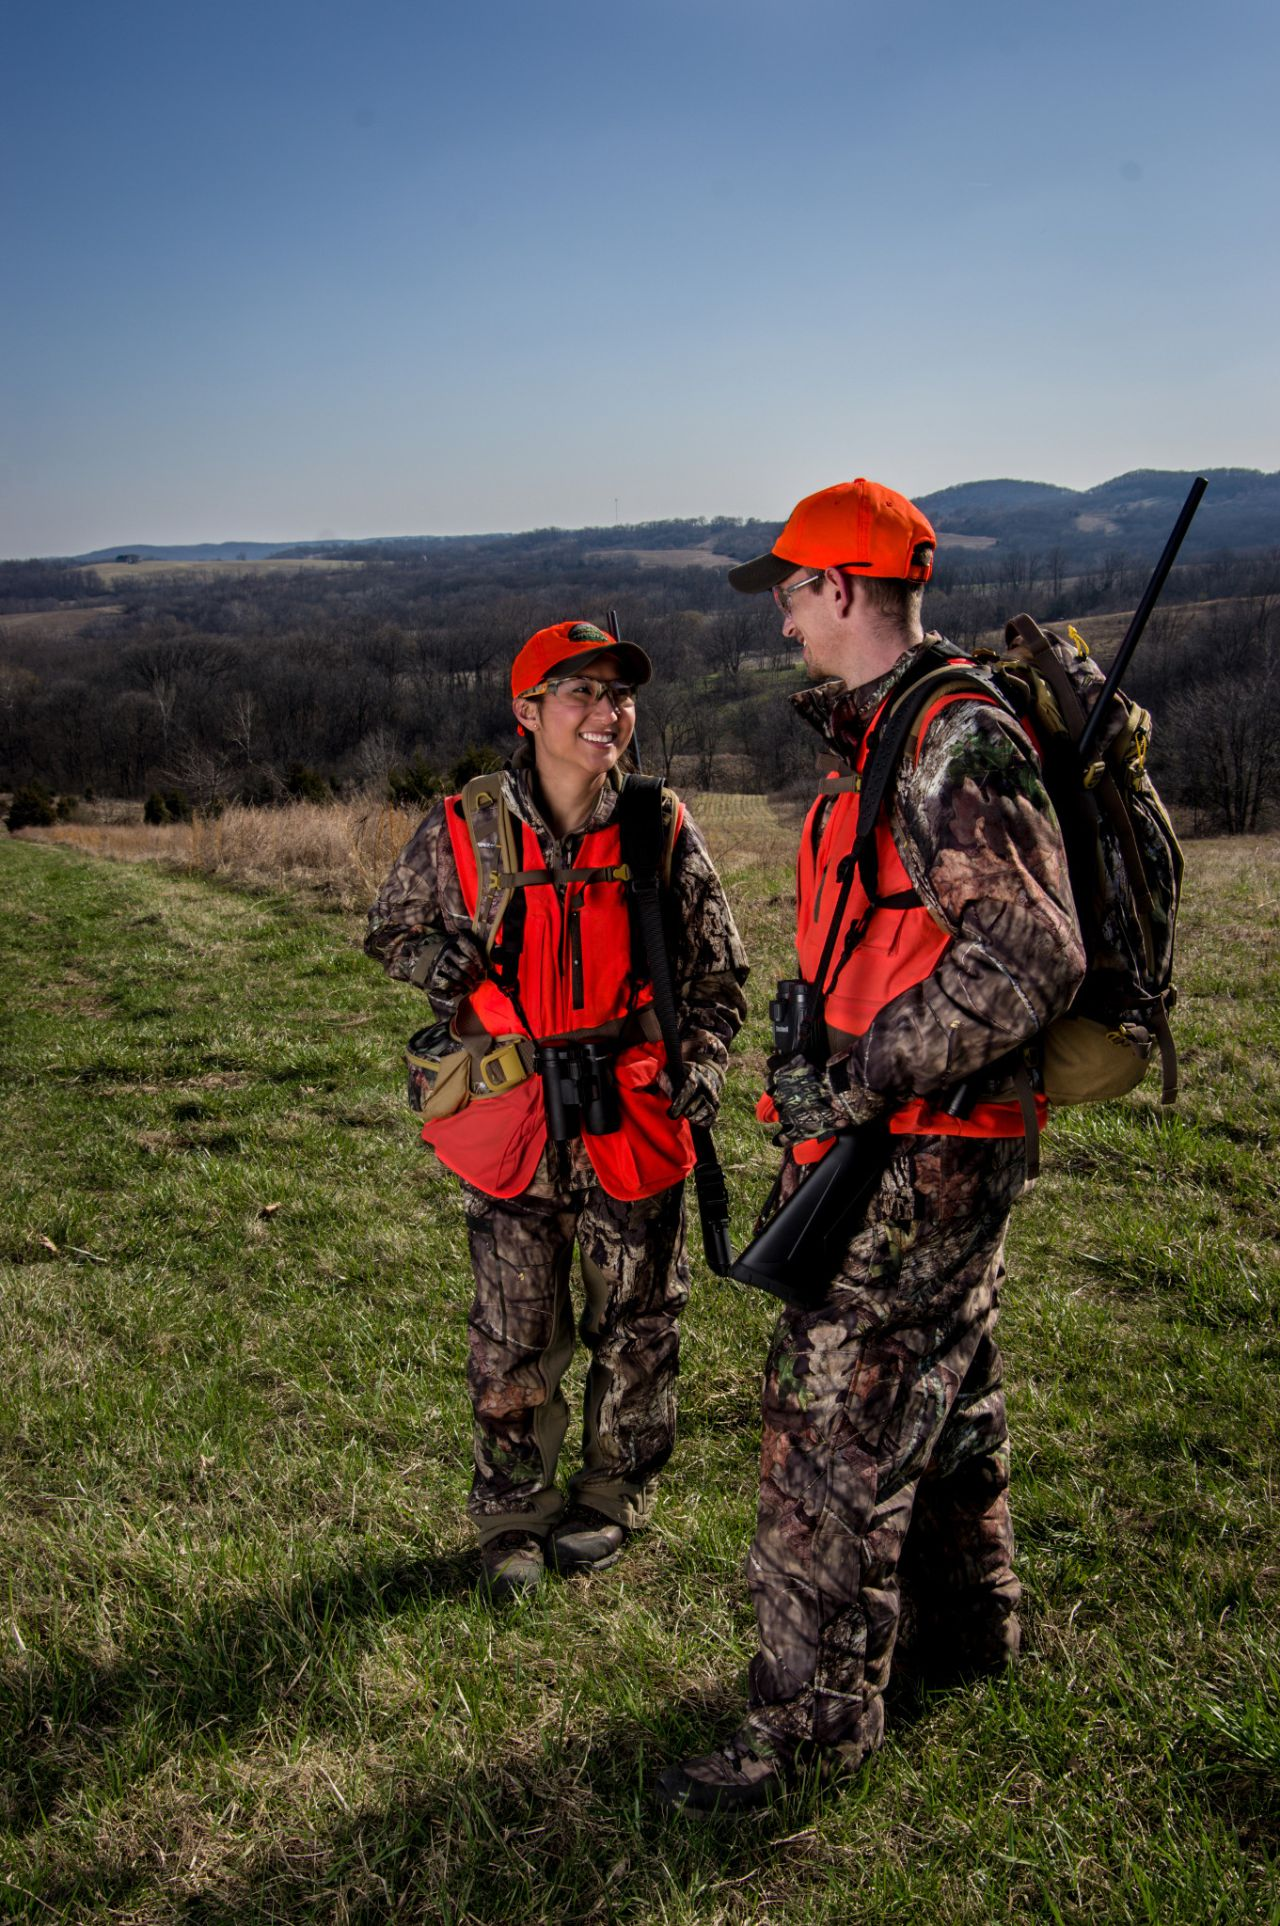 NEW Sunday Hunting LAW – Pennsylvania Celebrates More Hunting for Everyone